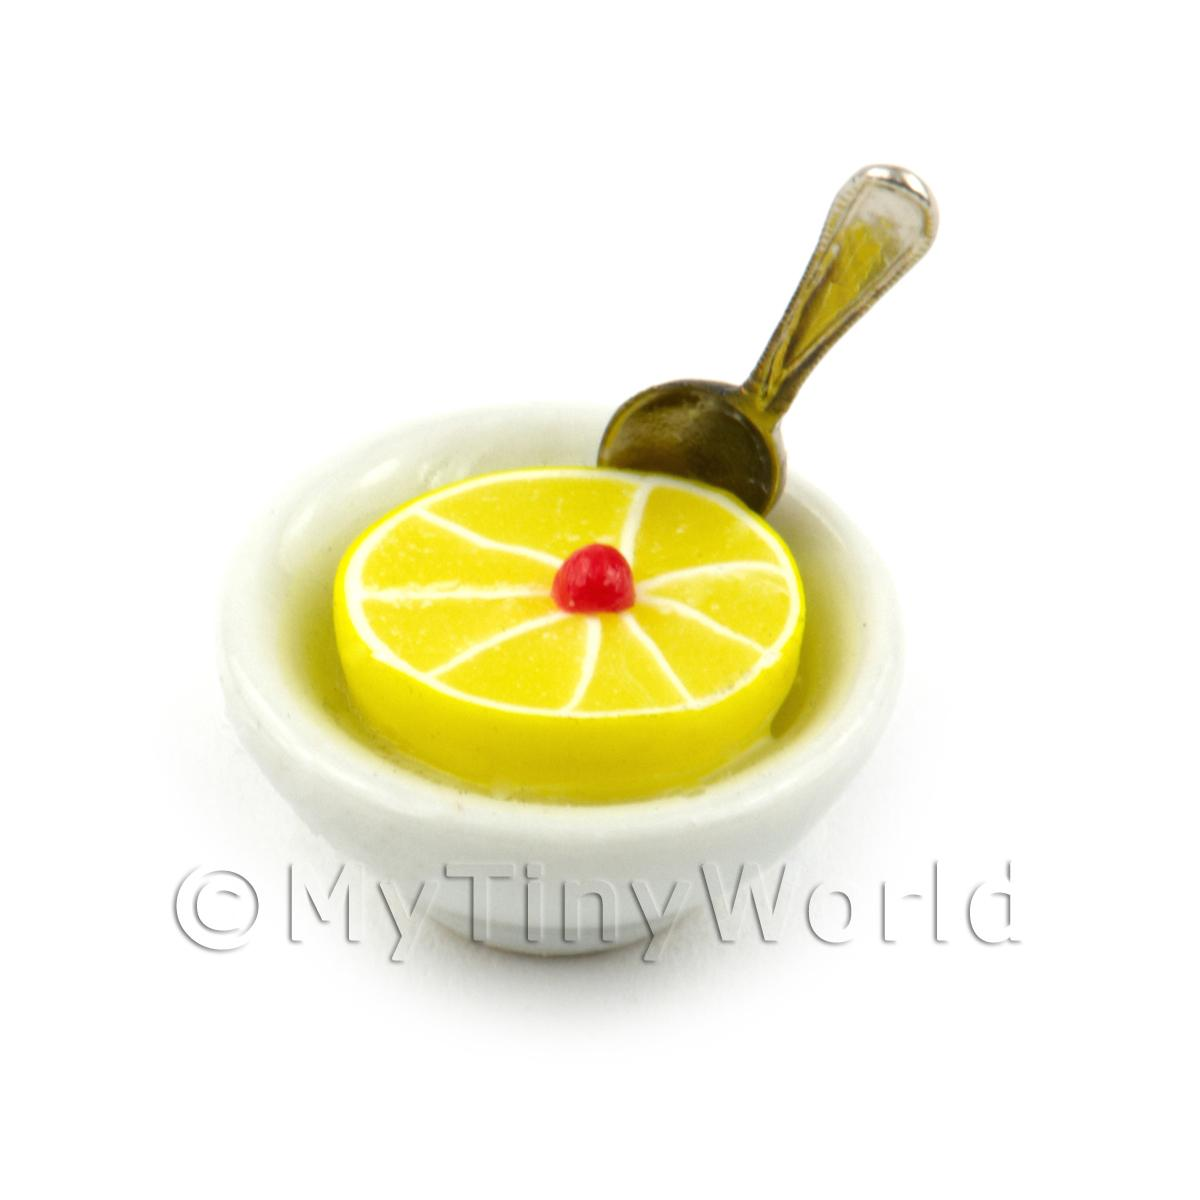 Dolls House Miniature Half Grapefruit In a Bowl